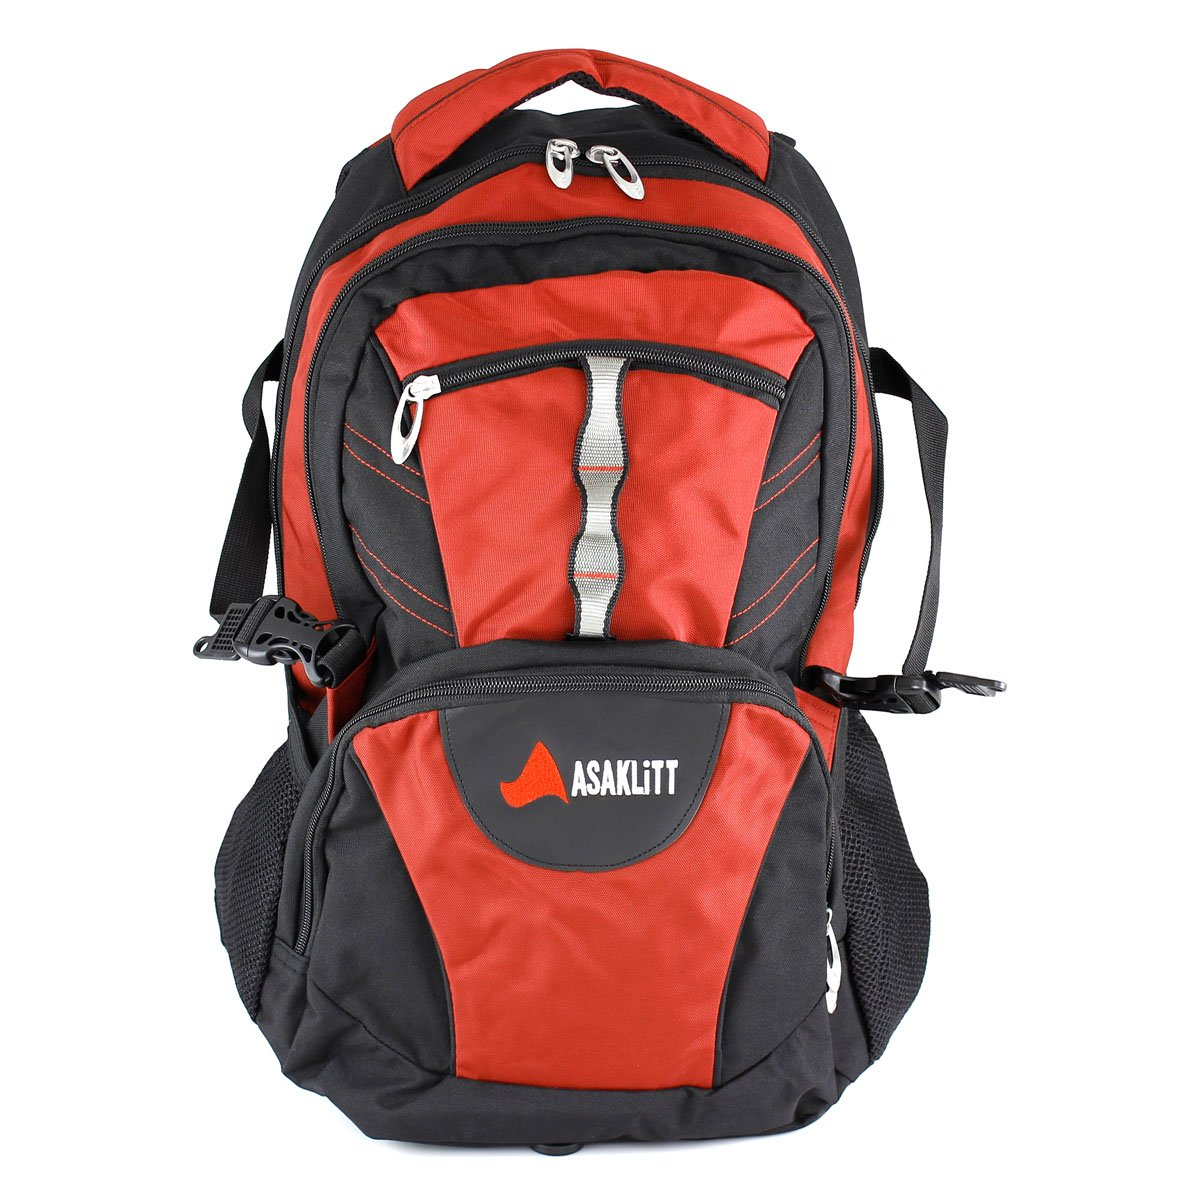 Askalitt Casual Durable Backpack, 35 Liter, 15 inch laptop Macbook sleeve, red